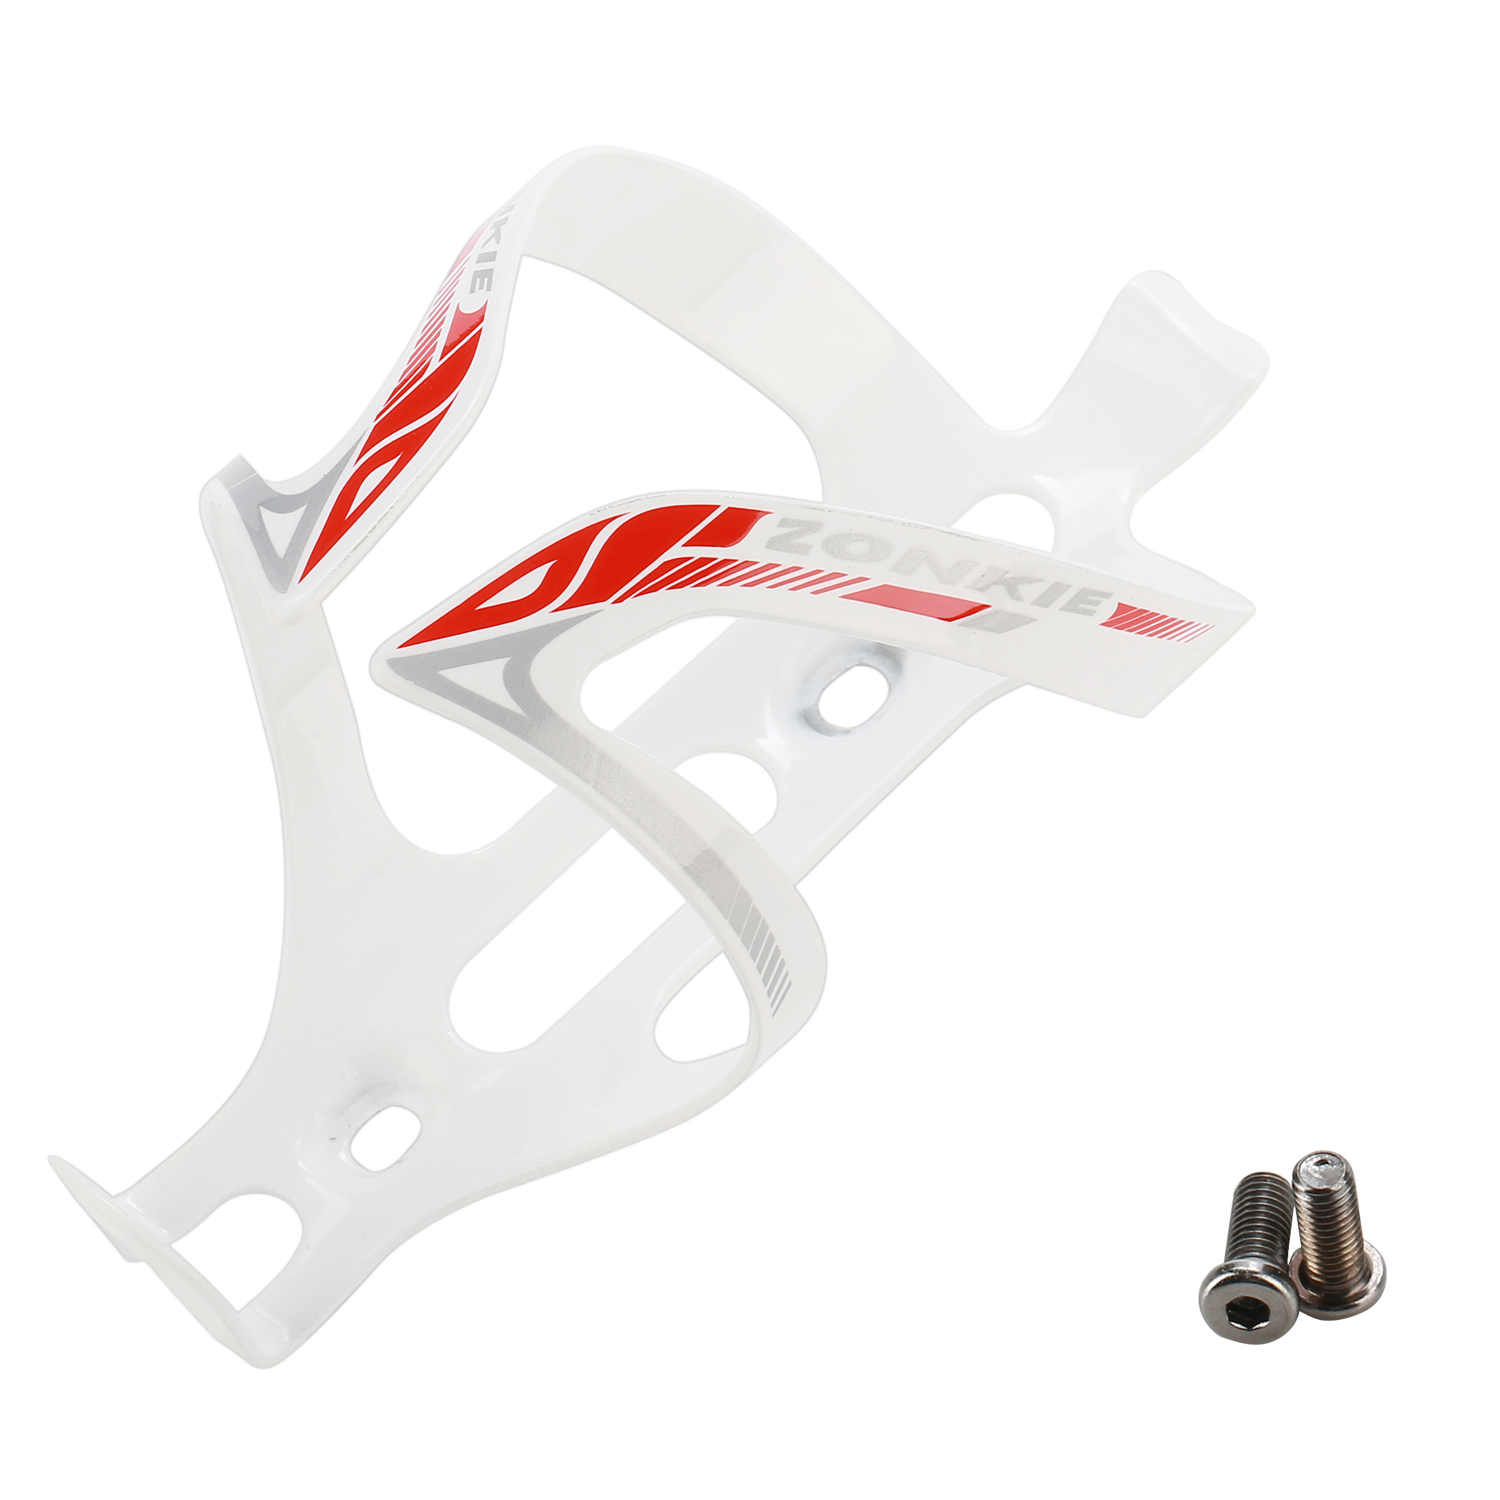 ZONKIE Bicycle Bottle Cage Aluminum Alloy